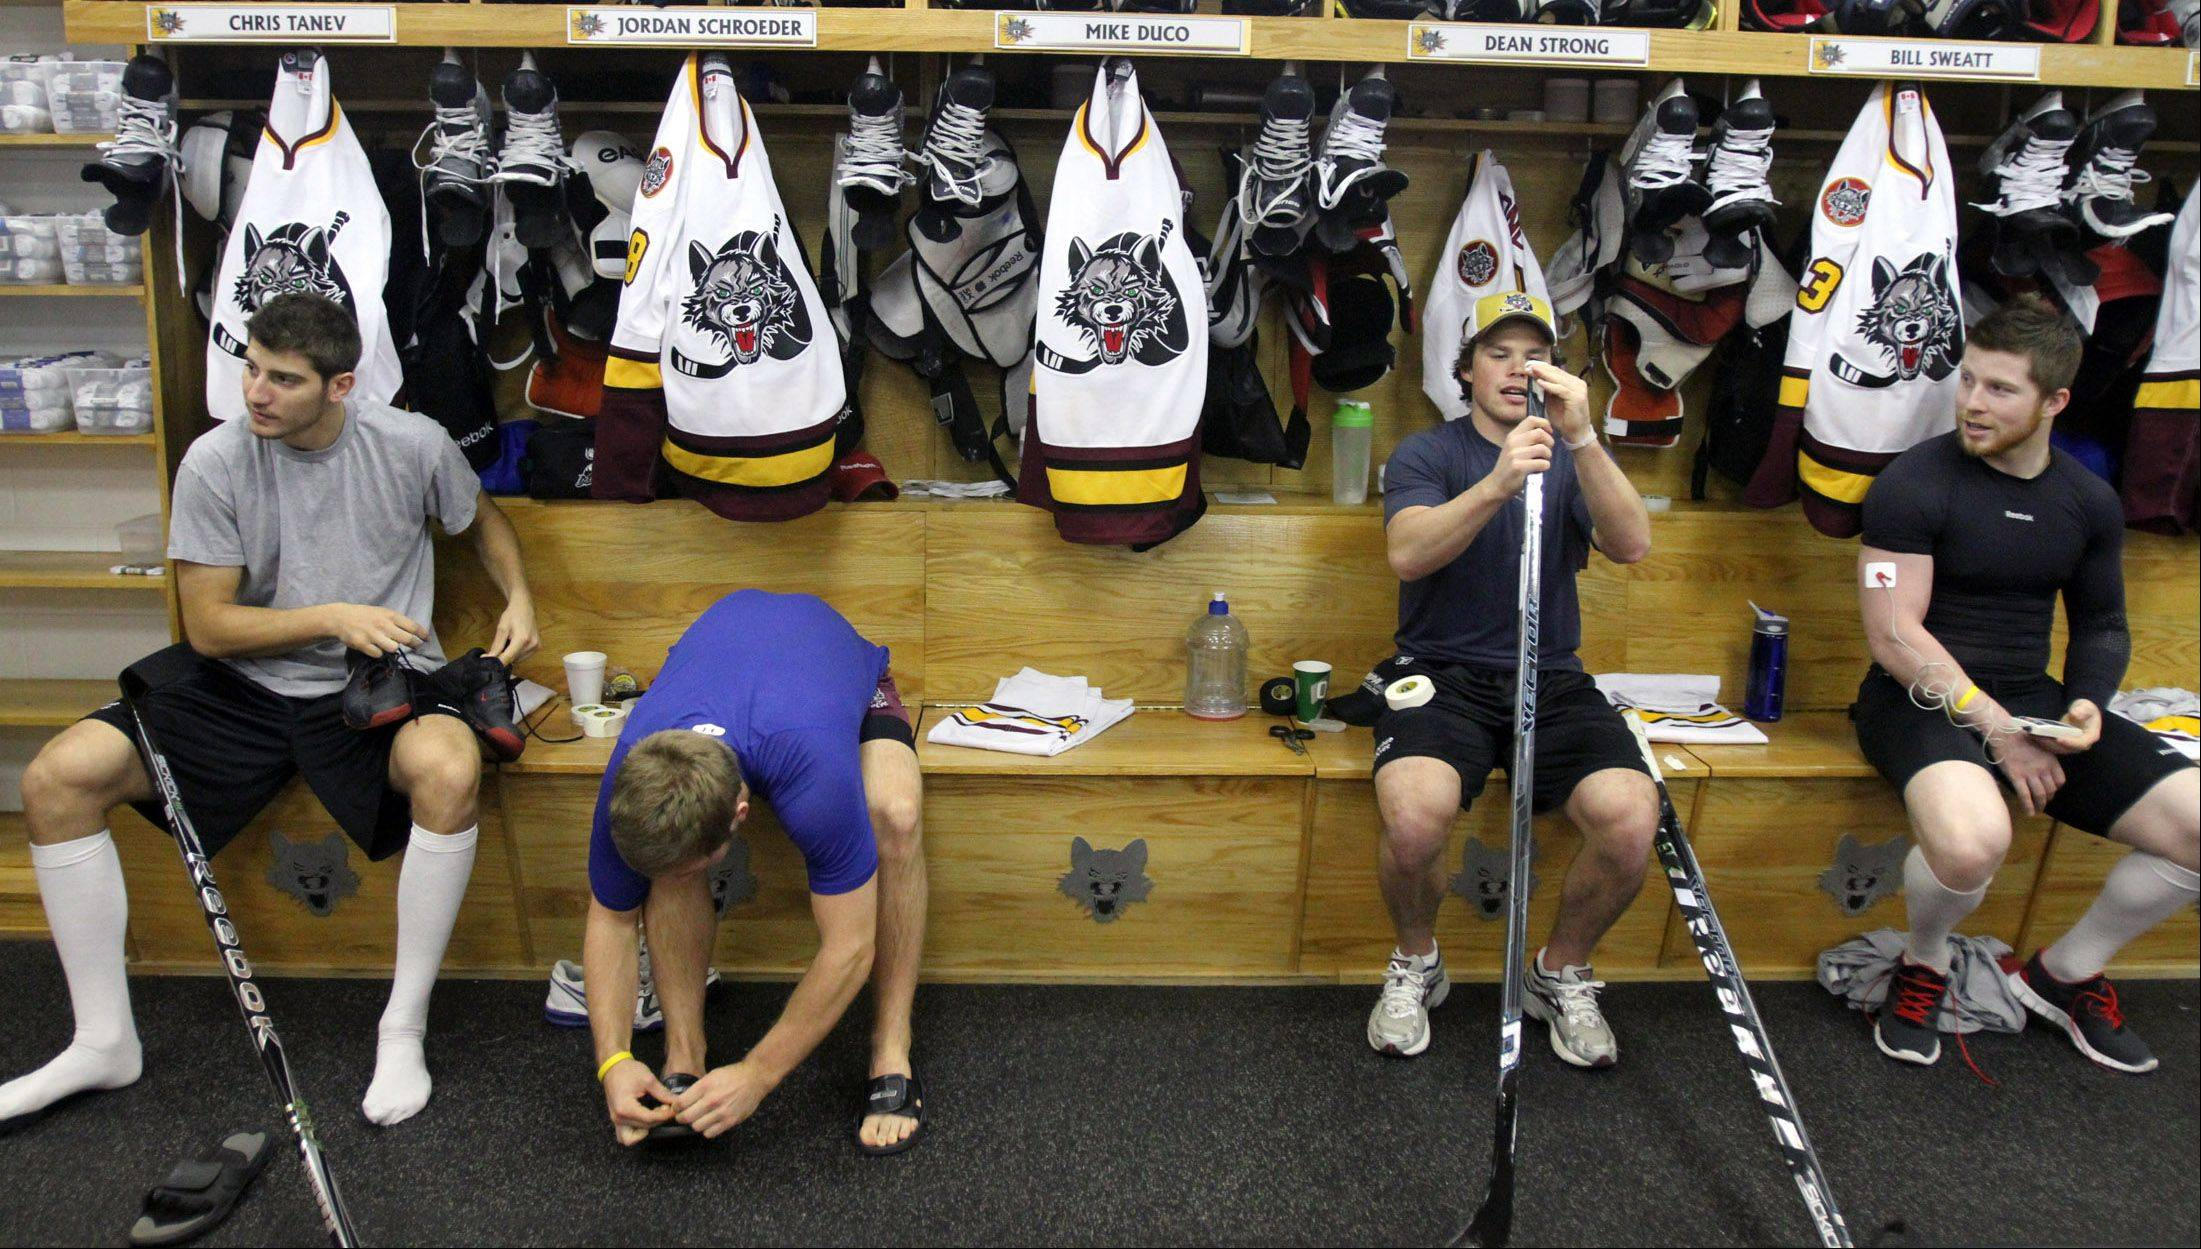 Chicago Wolves players Chris Tanev, center Jordan Schroeder, forward Dean Strong, and left wing Mike Duco prepare for their matchup with the Rockford IceHogs in the team's locker room at Allstate Arena.